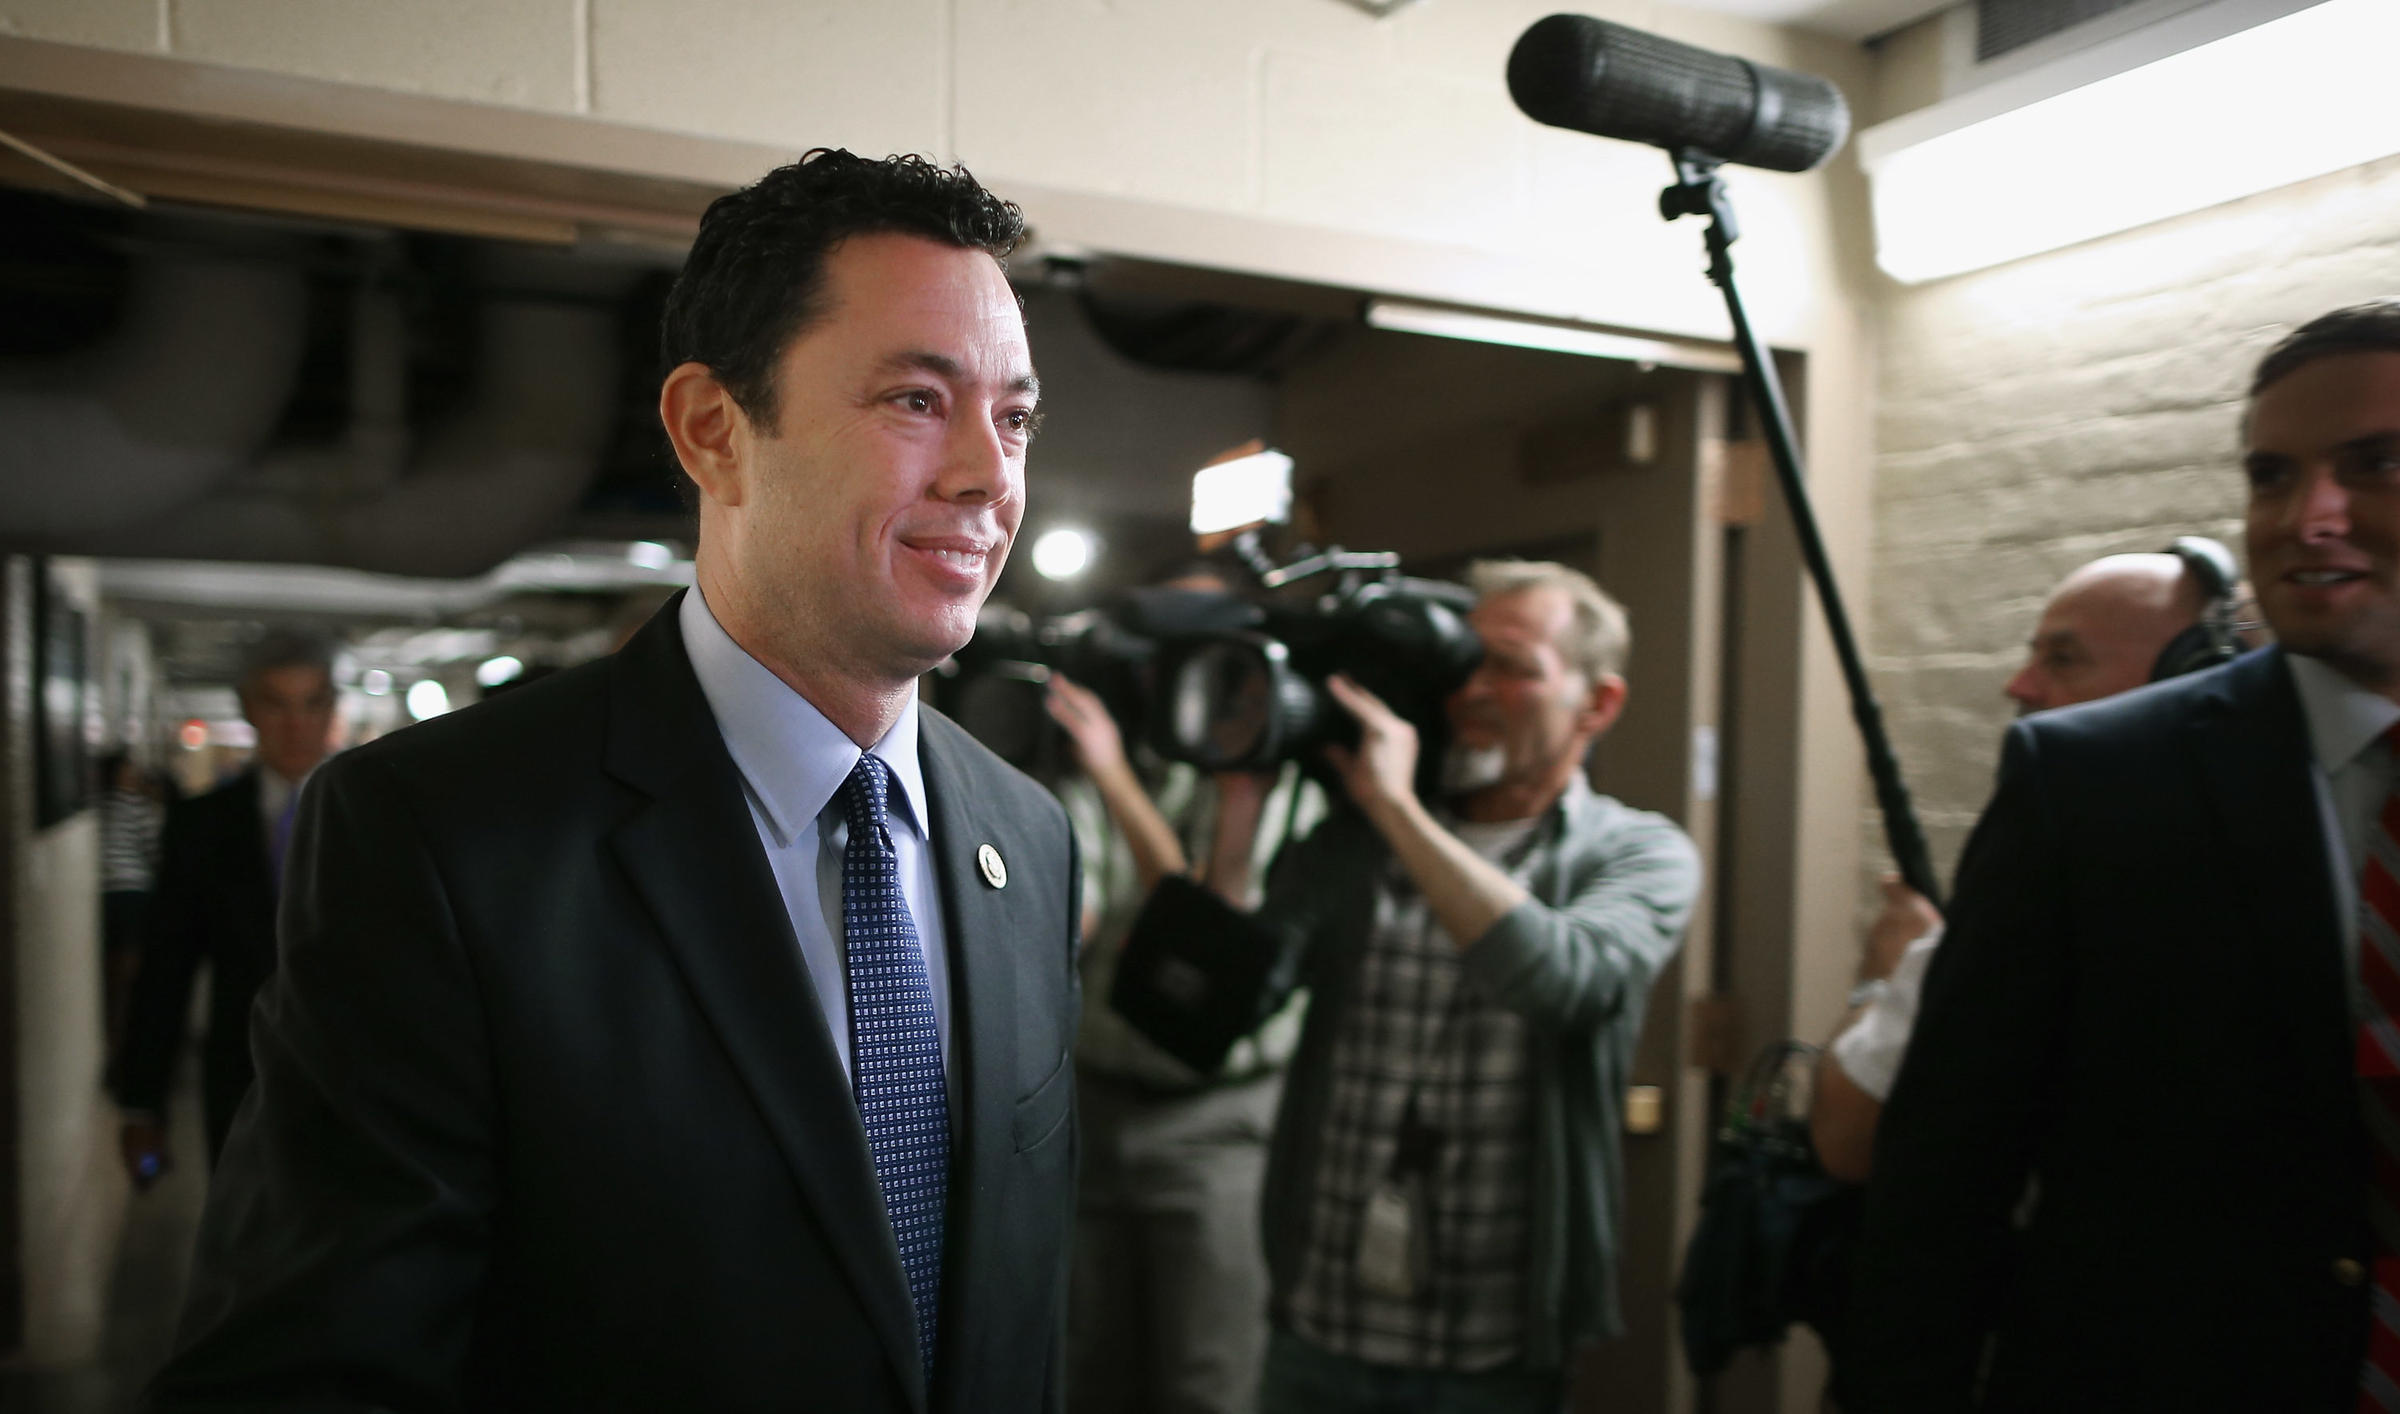 House Oversight Chair Jason Chaffetz Announces Resignation From Congress